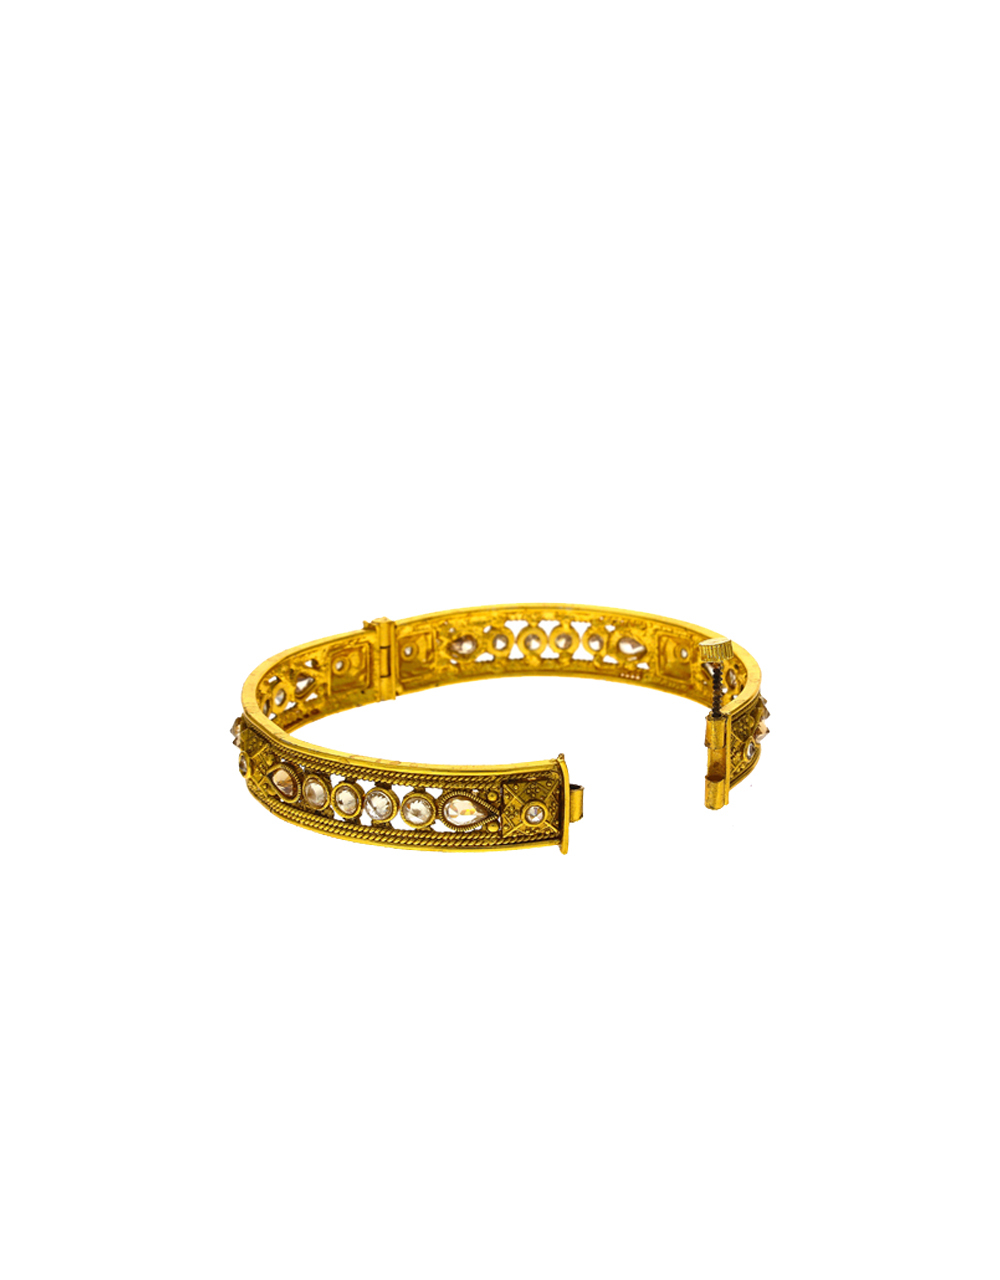 Fancy Green Colour Golden Finish Traditional Bangles For Women Online.